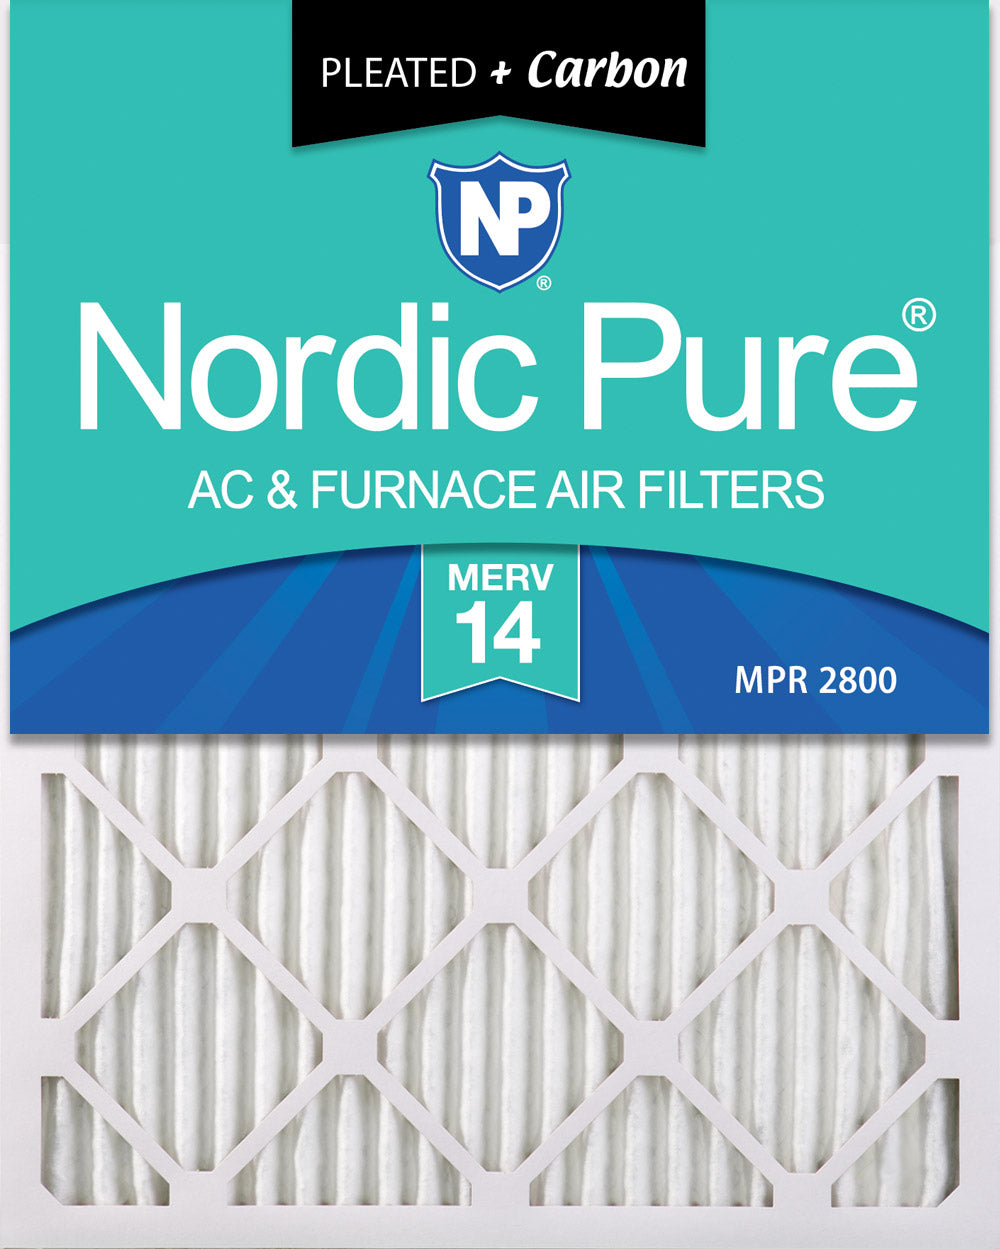 10x12x1 Exact MERV 14 Plus Carbon AC Furnace Filters 6 Pack